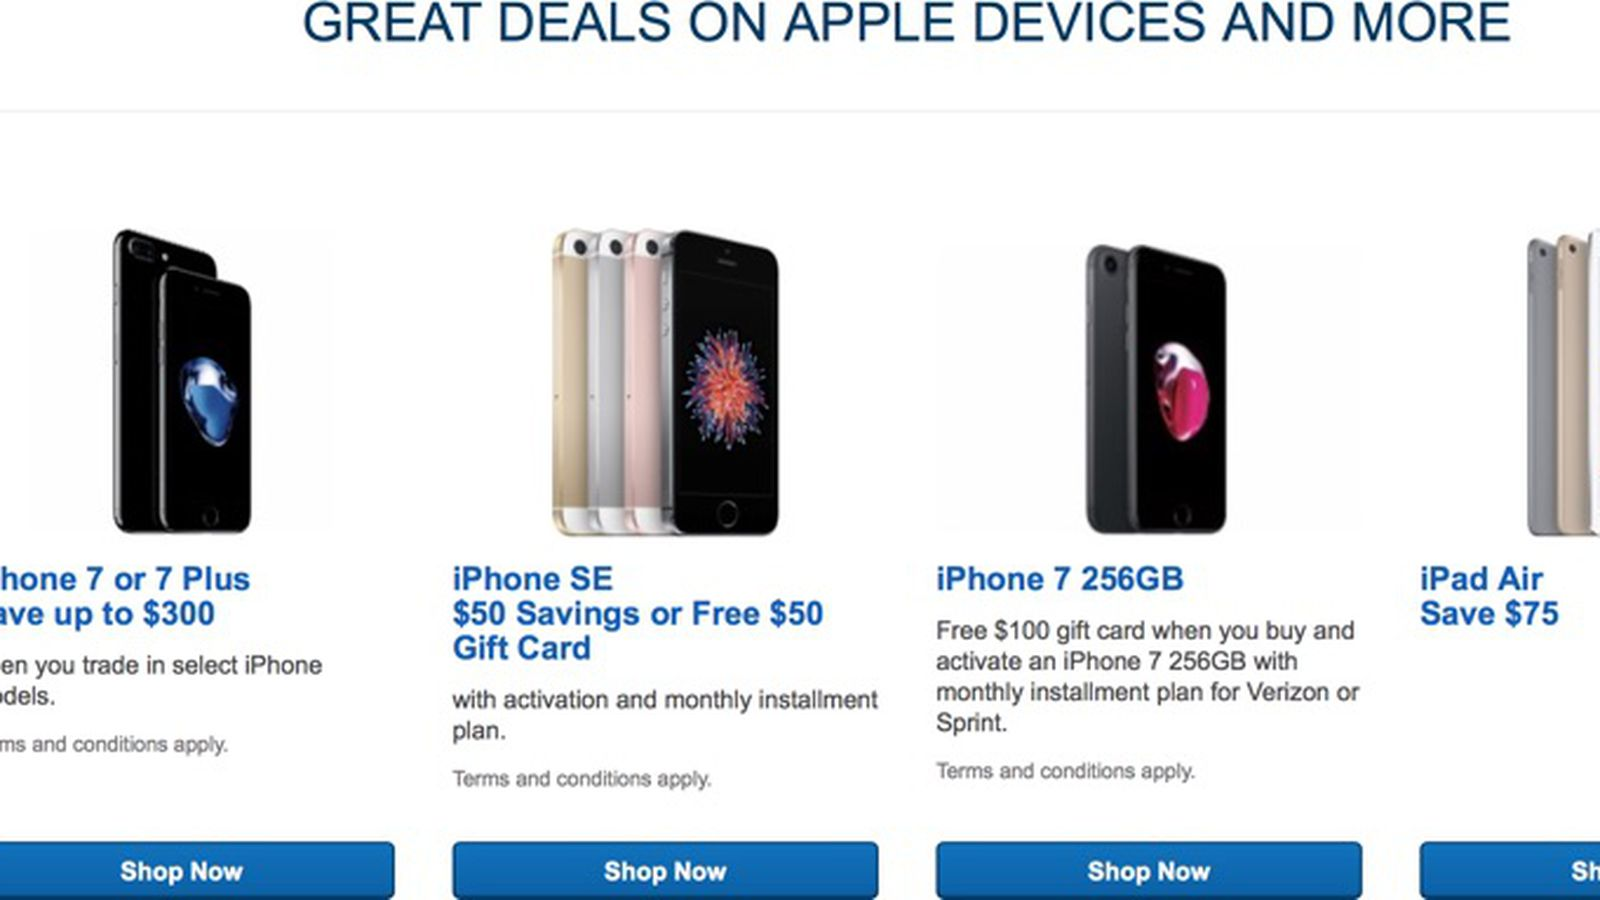 Best Buy Discounts Ipad Air 2 By 75 Offers Deals On Iphone 7 And Iphone Se Macrumors